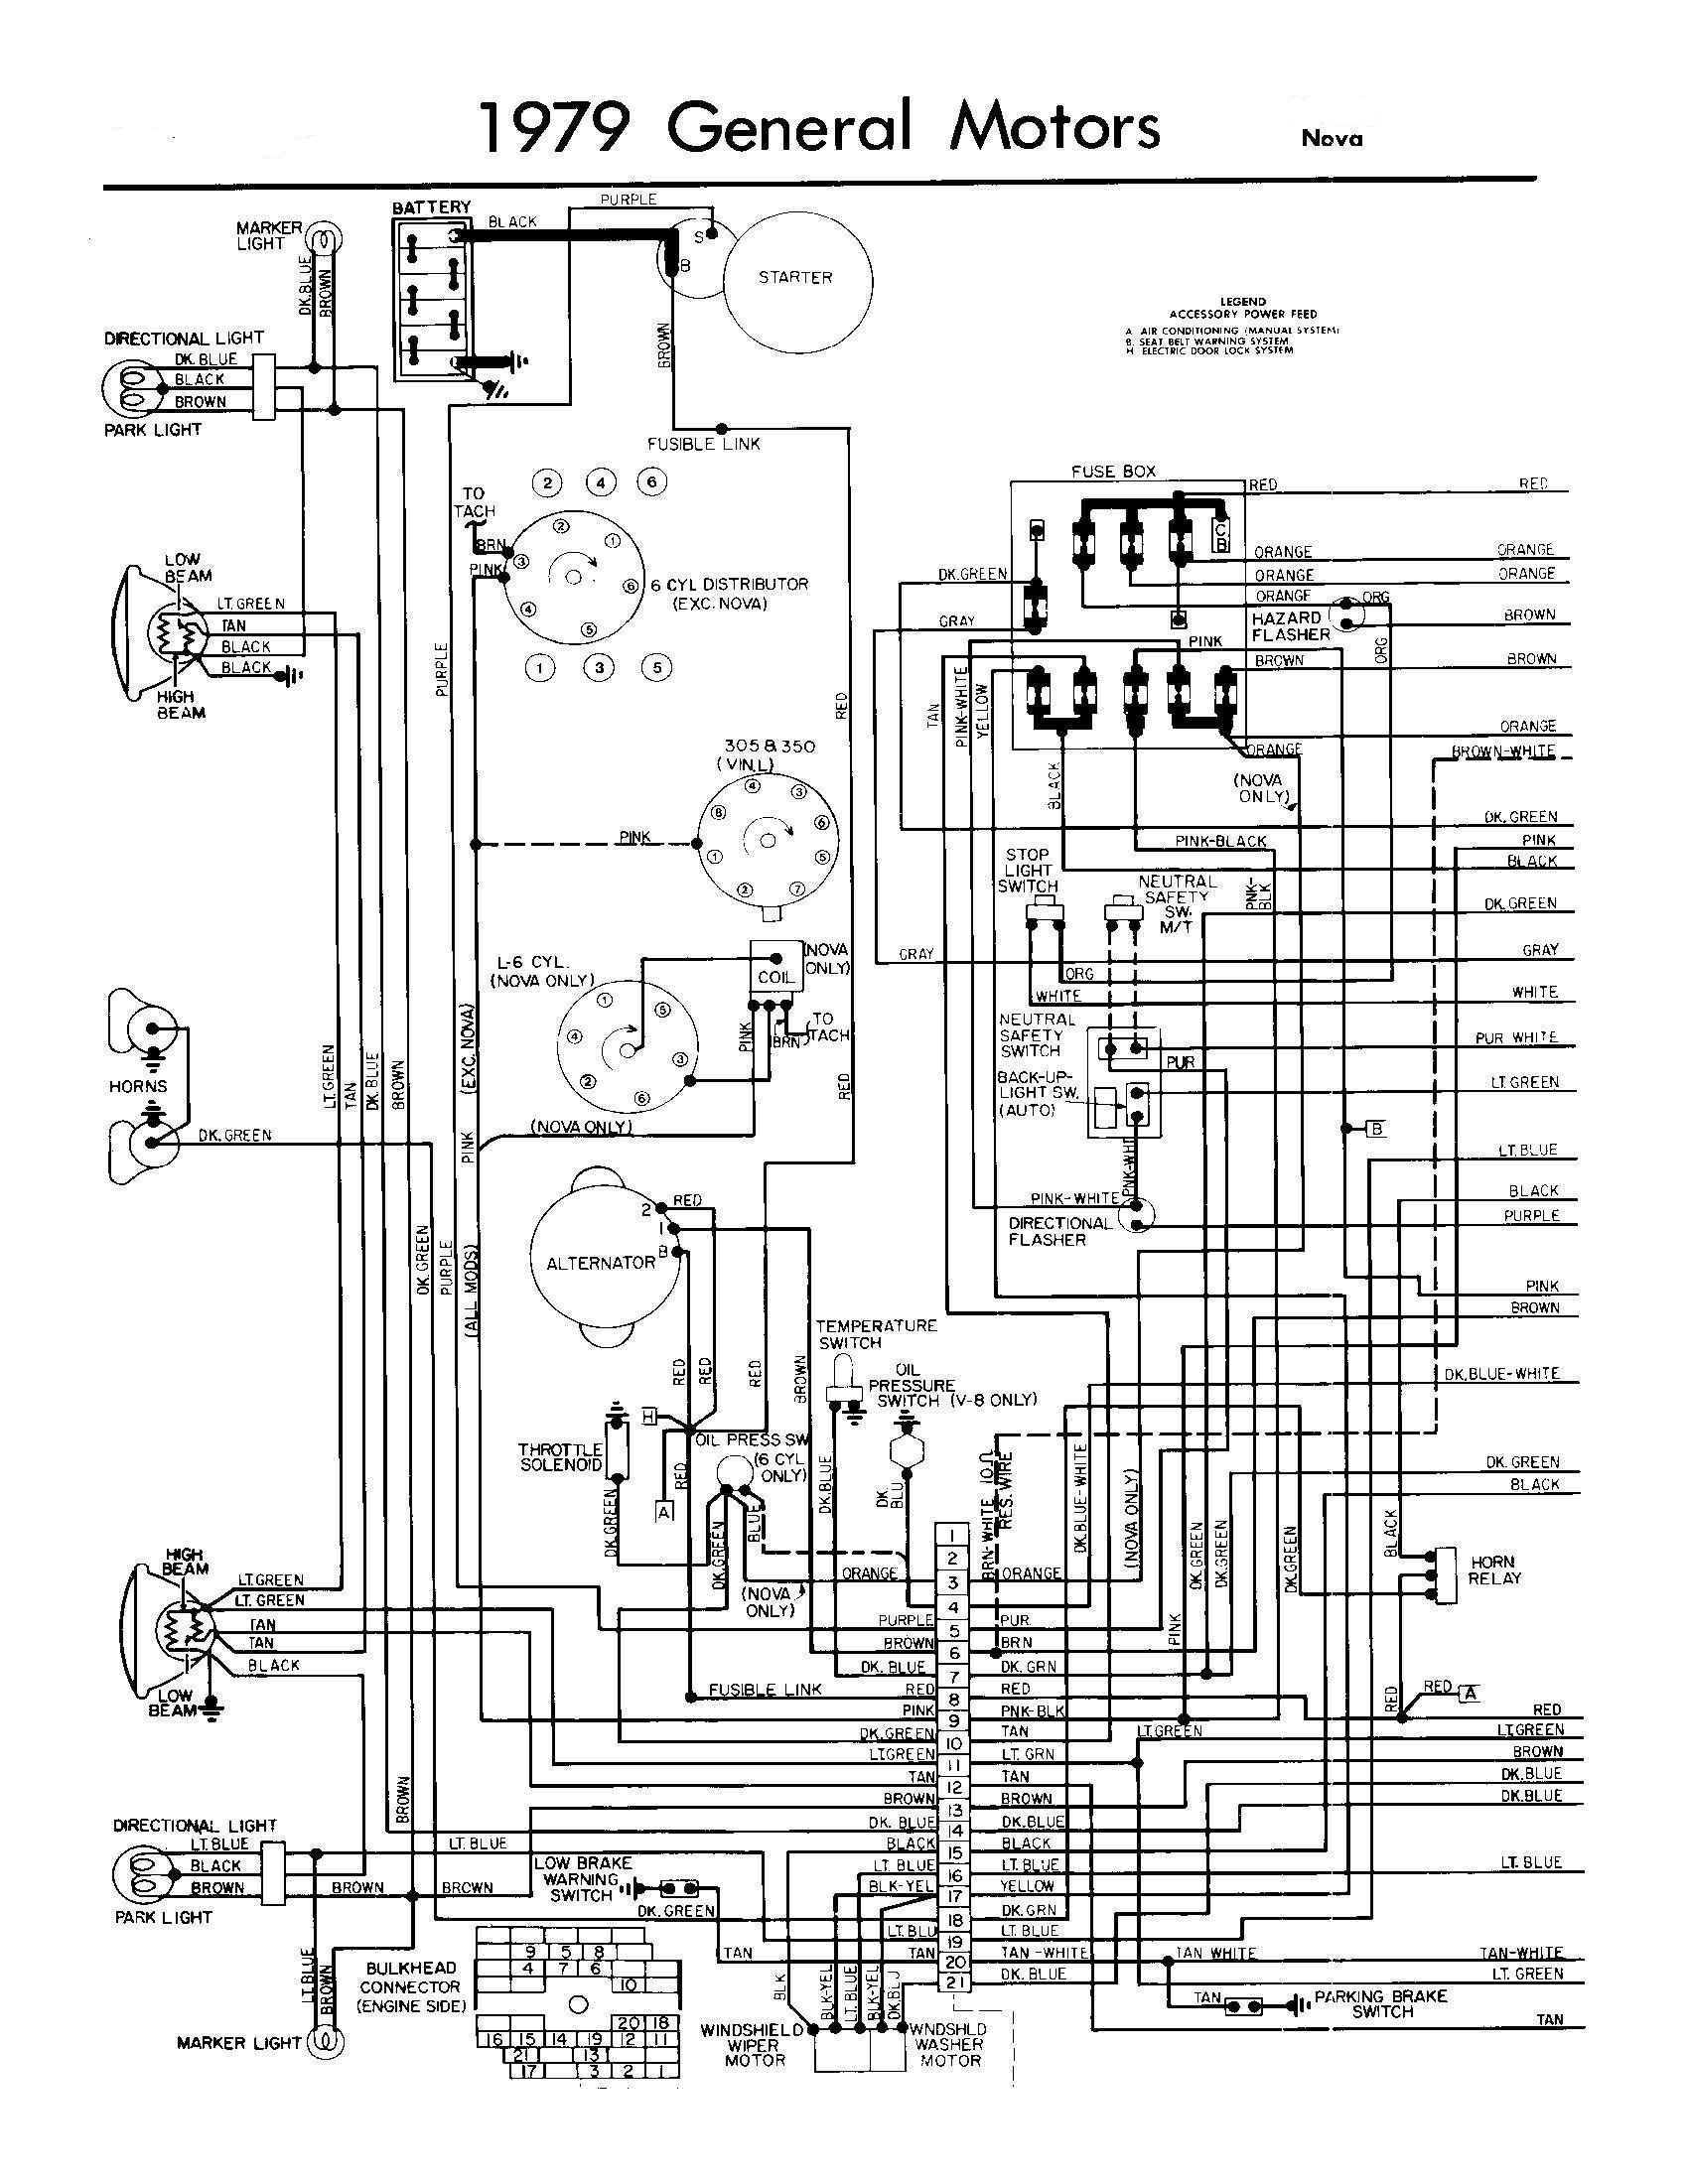 Car Schematic Diagram My Wiring DIagram